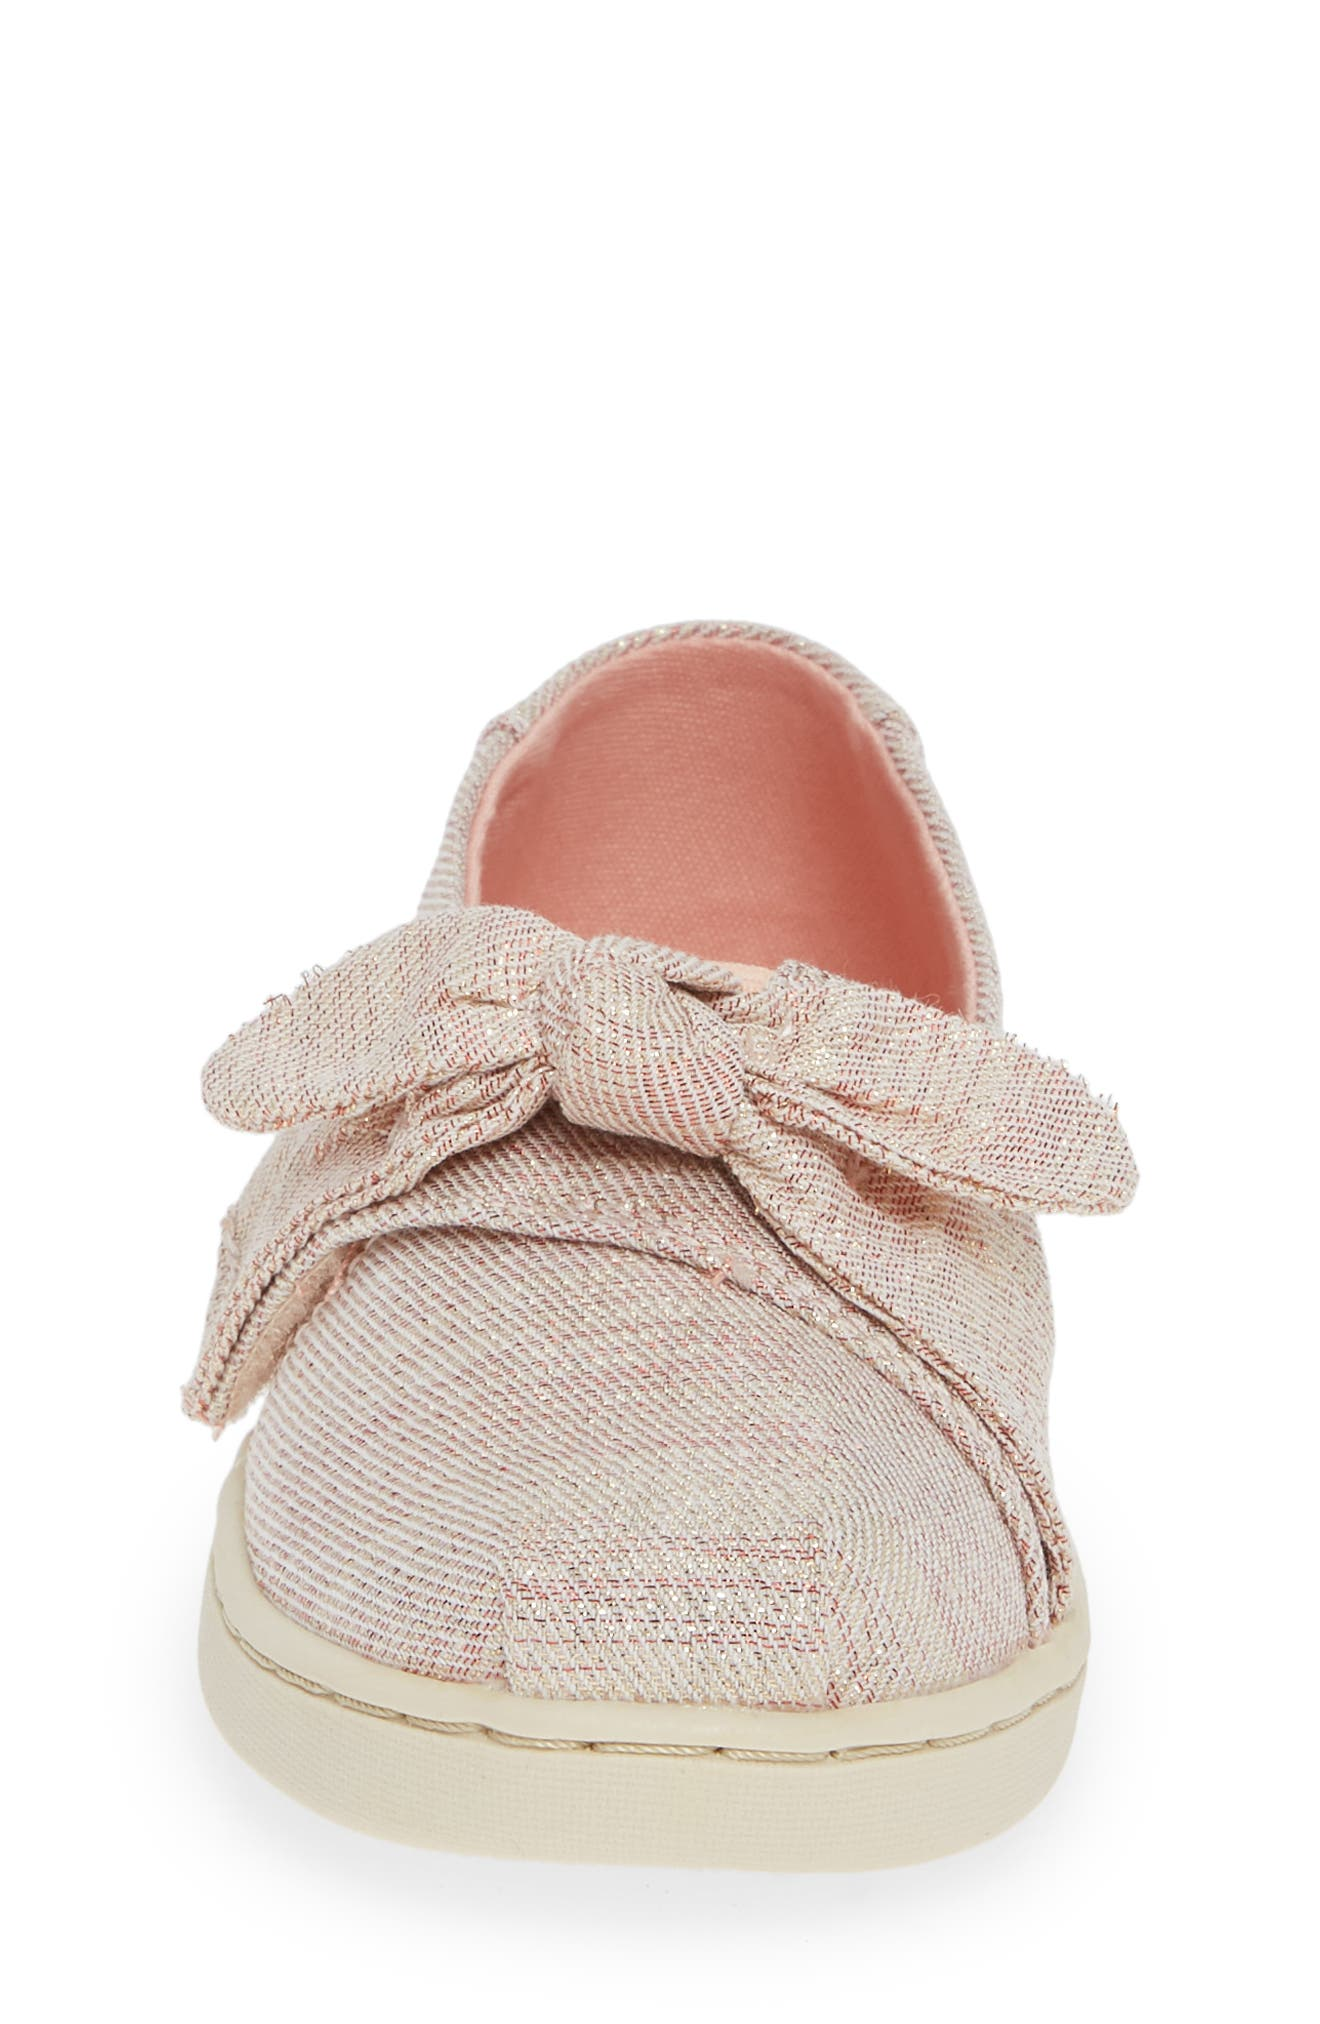 Tiny Bow Alpargata Slip-On,                             Alternate thumbnail 4, color,                             ROSE CLOUD TWILL GLIMMER